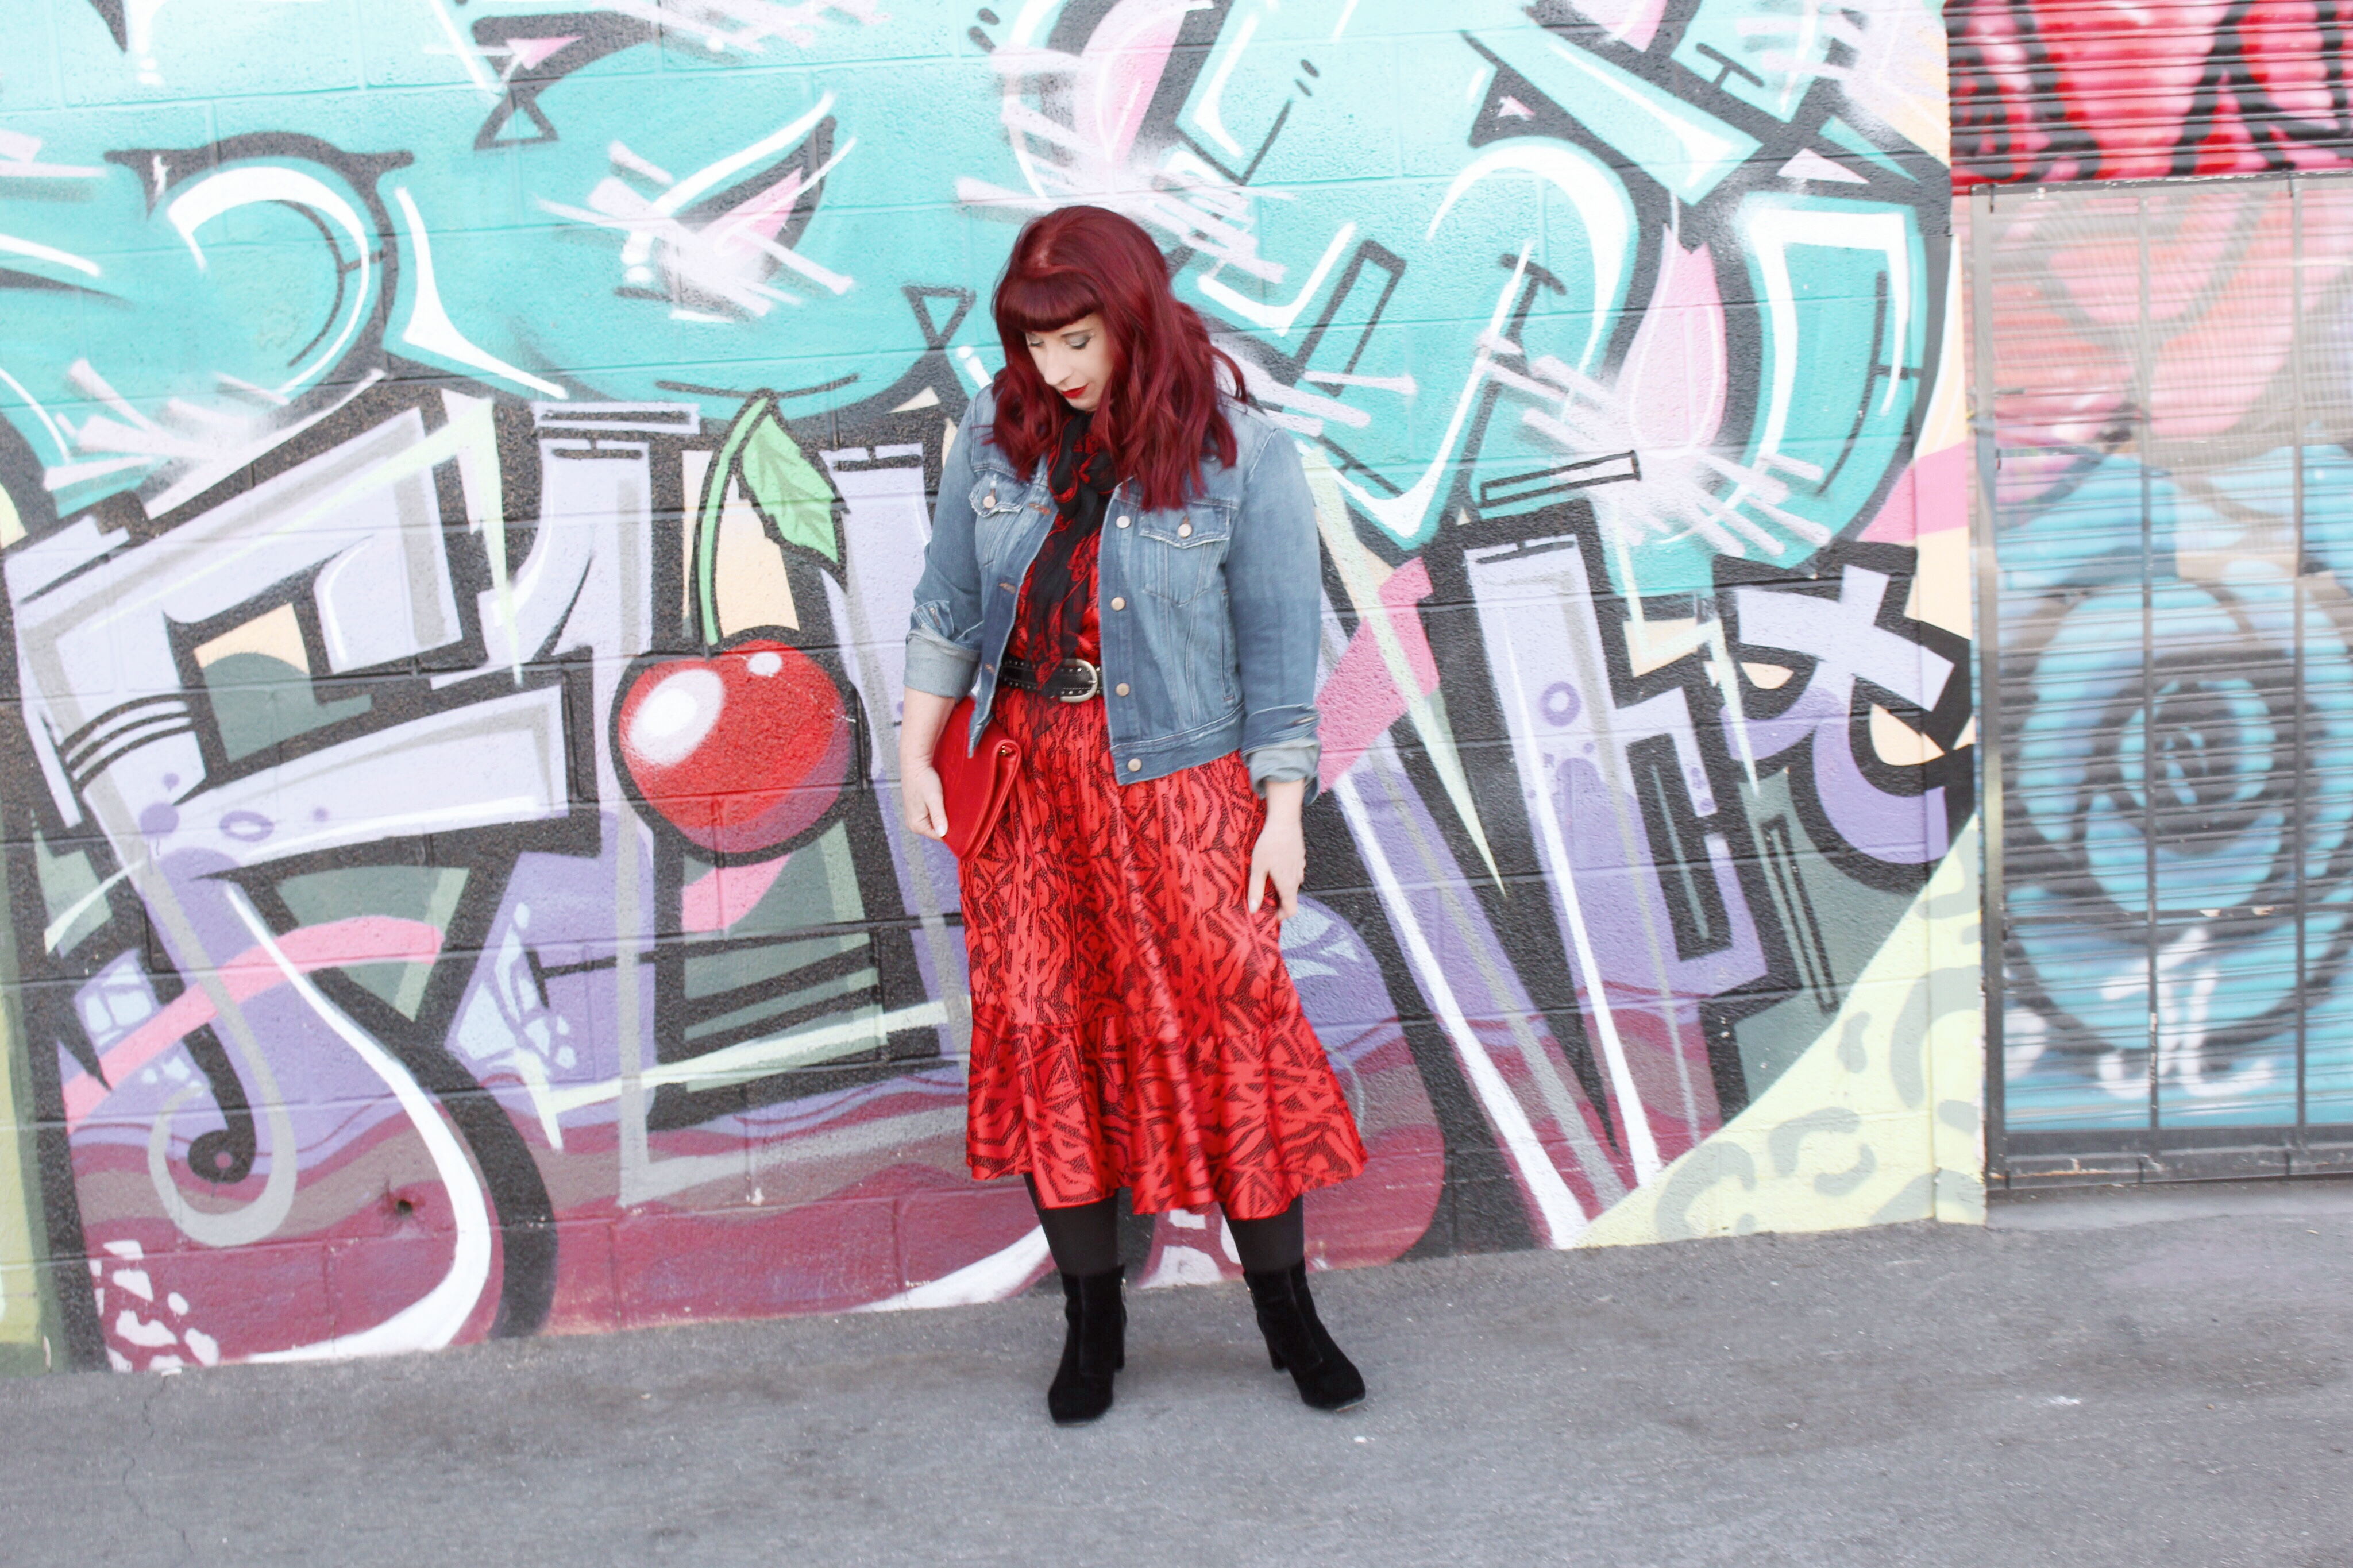 3 Things To Make Any Look More Stylish - Christie Moeller